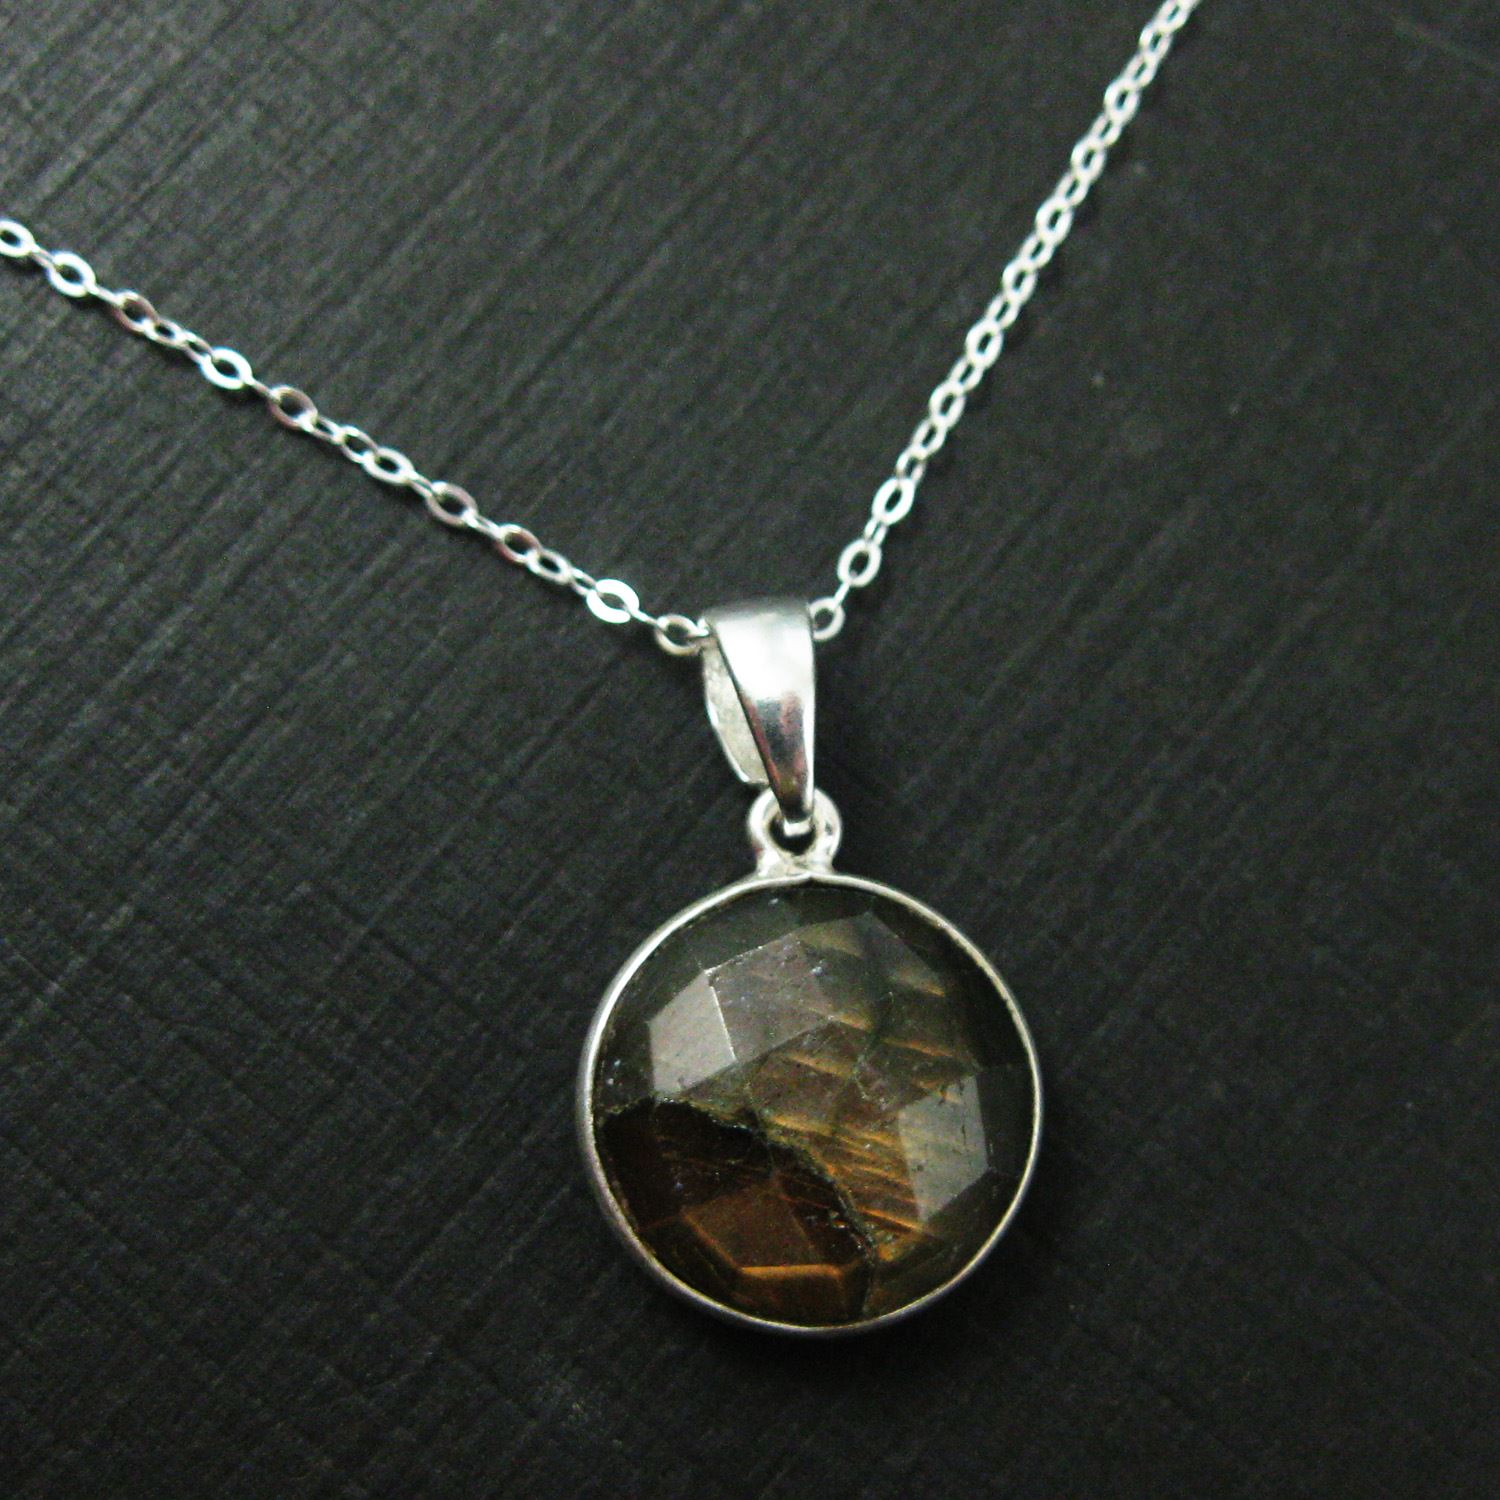 Bezel Gemstone Pendant with Bail - Sterling Silver Round Gem Pendant - Ready for Necklace - 24mm- Labradorite